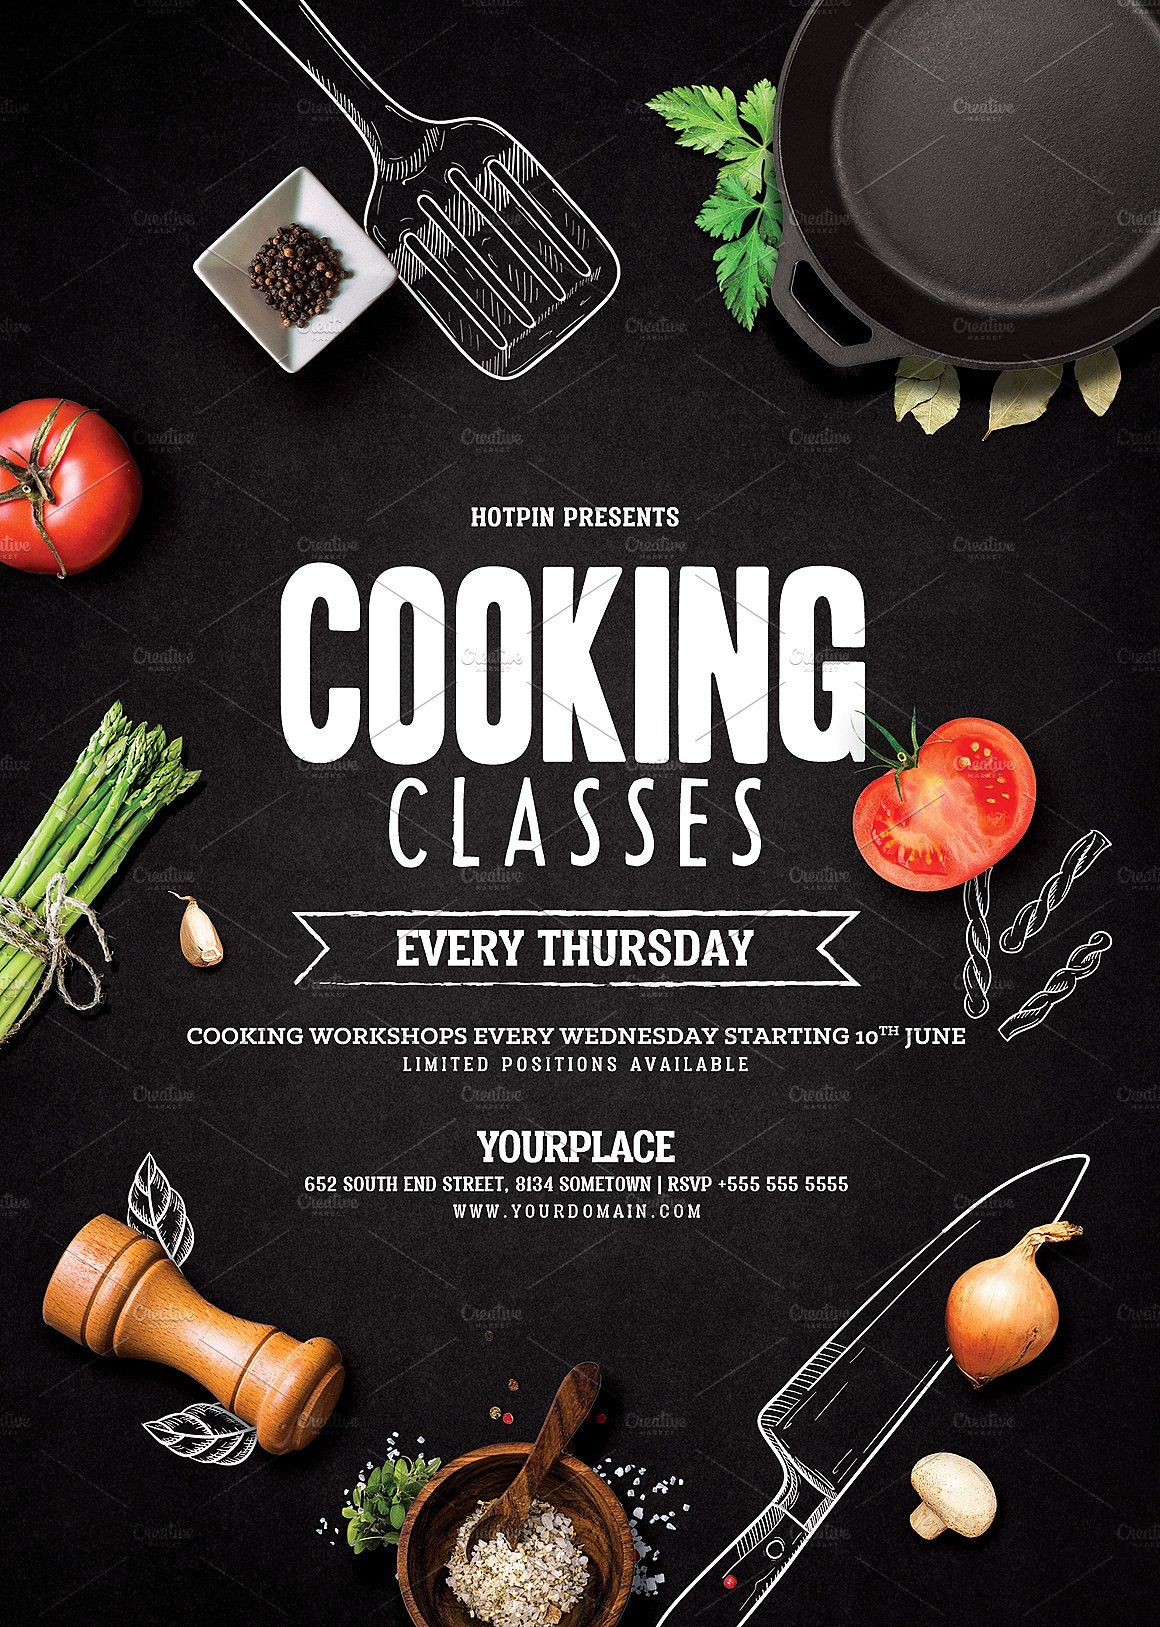 Cooking Lessons Flyer Template Cooking Classes Design Cooking Lessons Cooking Cooking class flyer template free